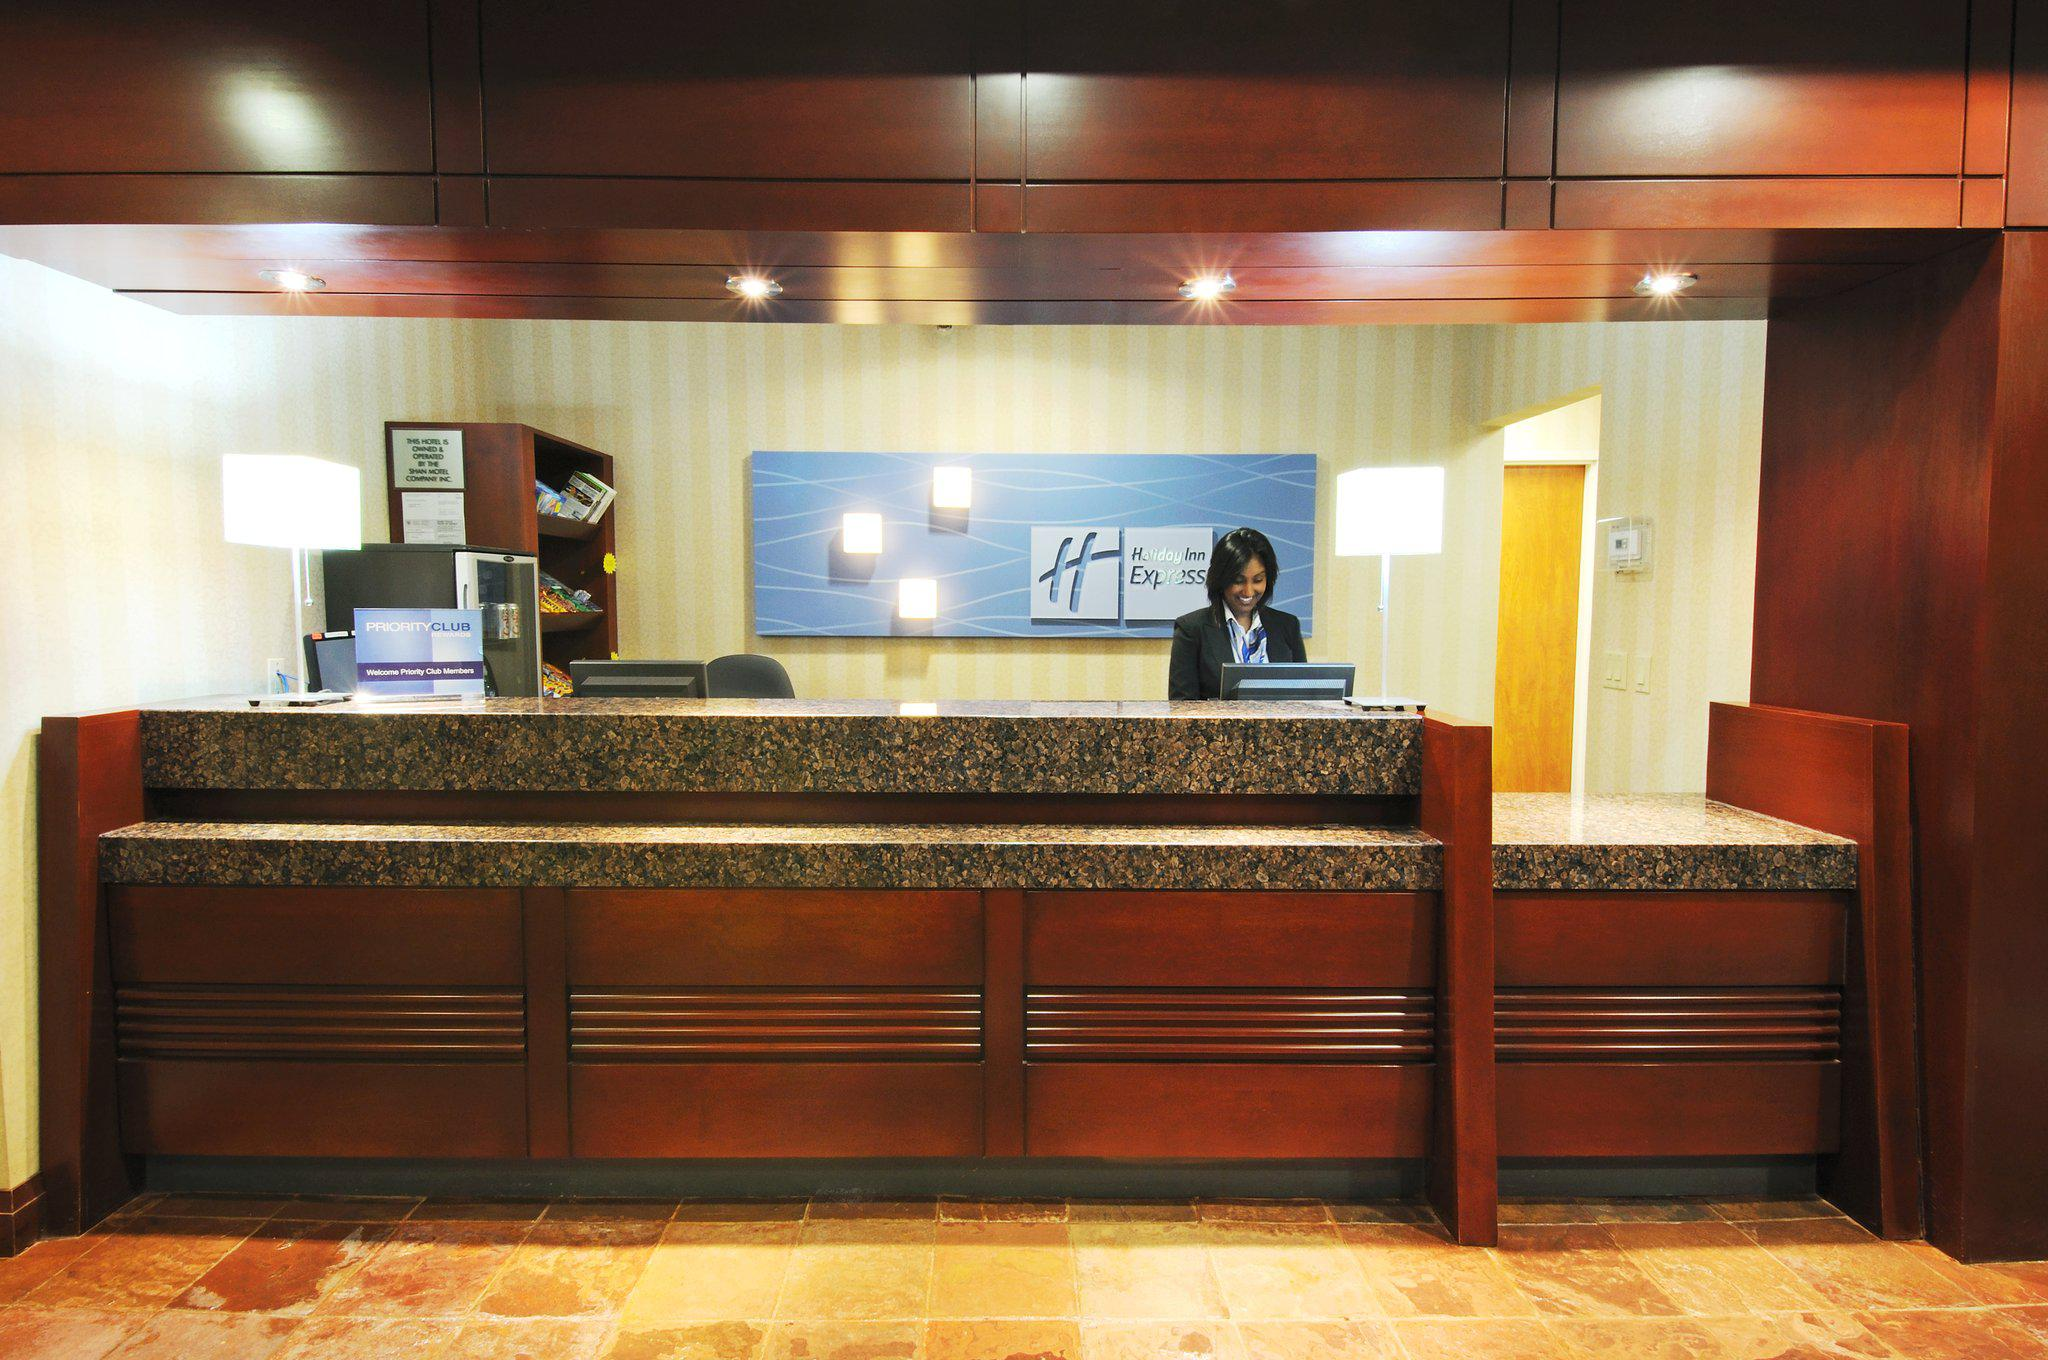 Images Holiday Inn Express & Suites Brampton